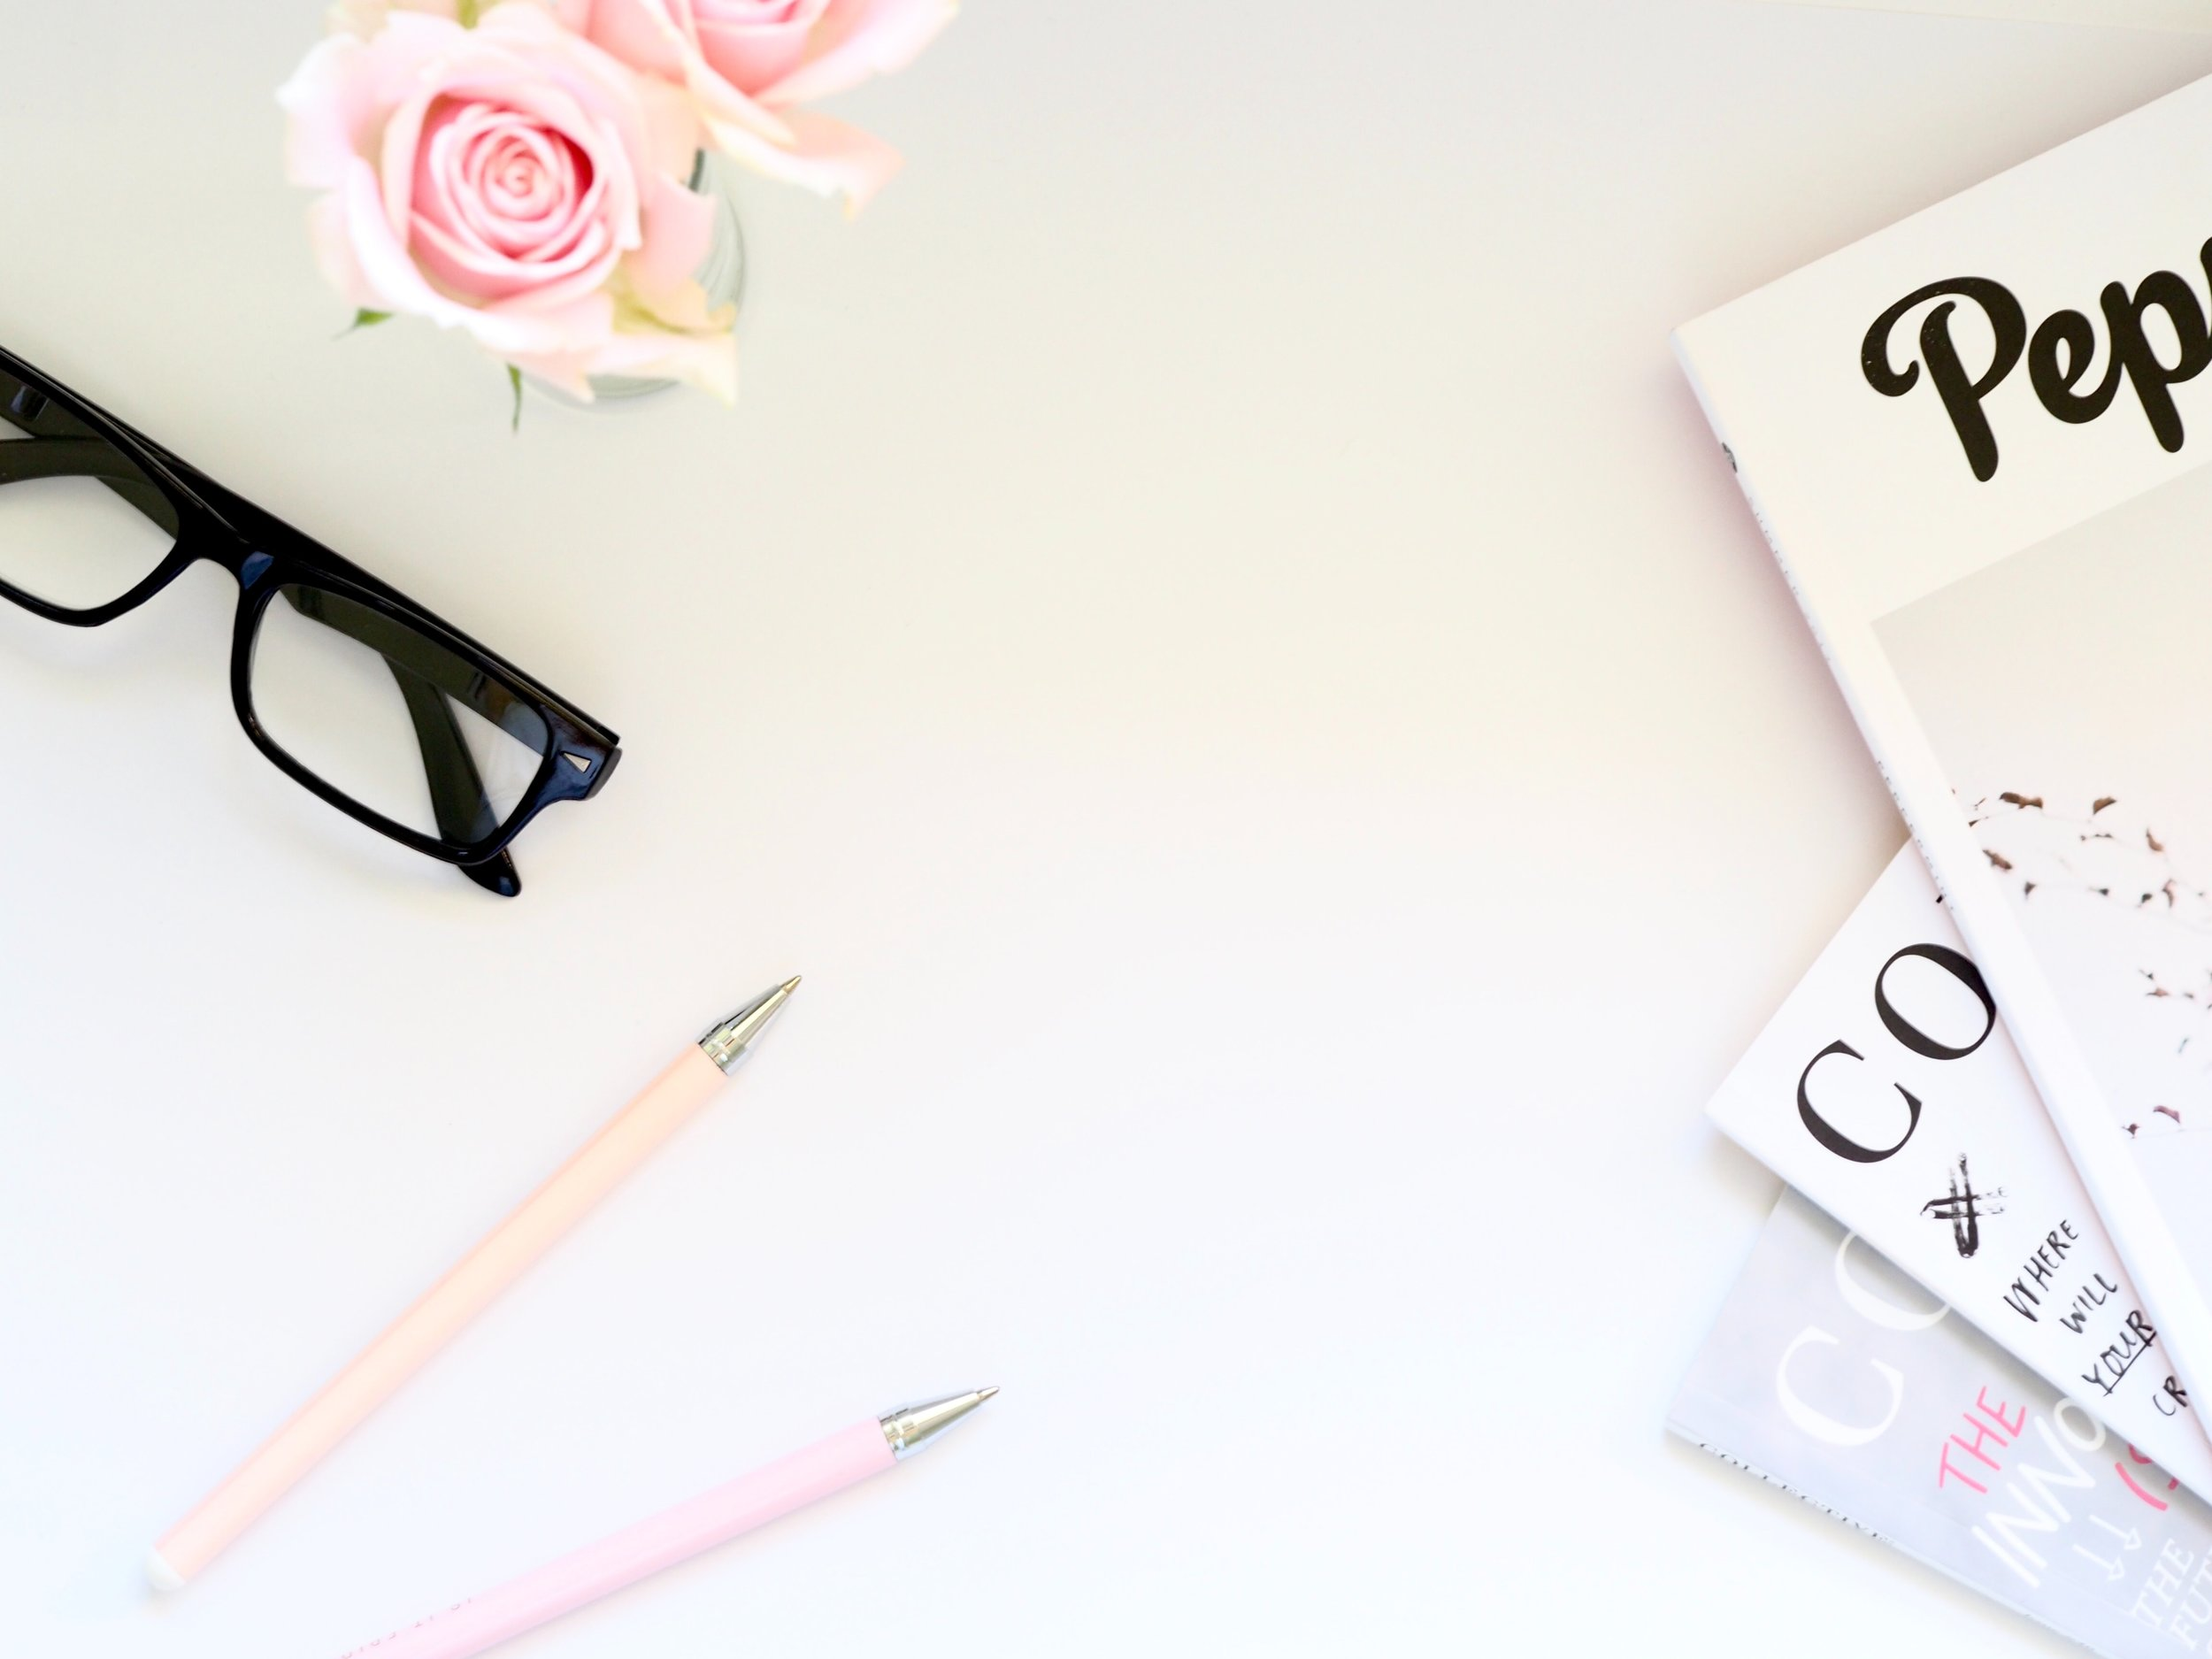 become a girl boss - Work from anywhere on your terms